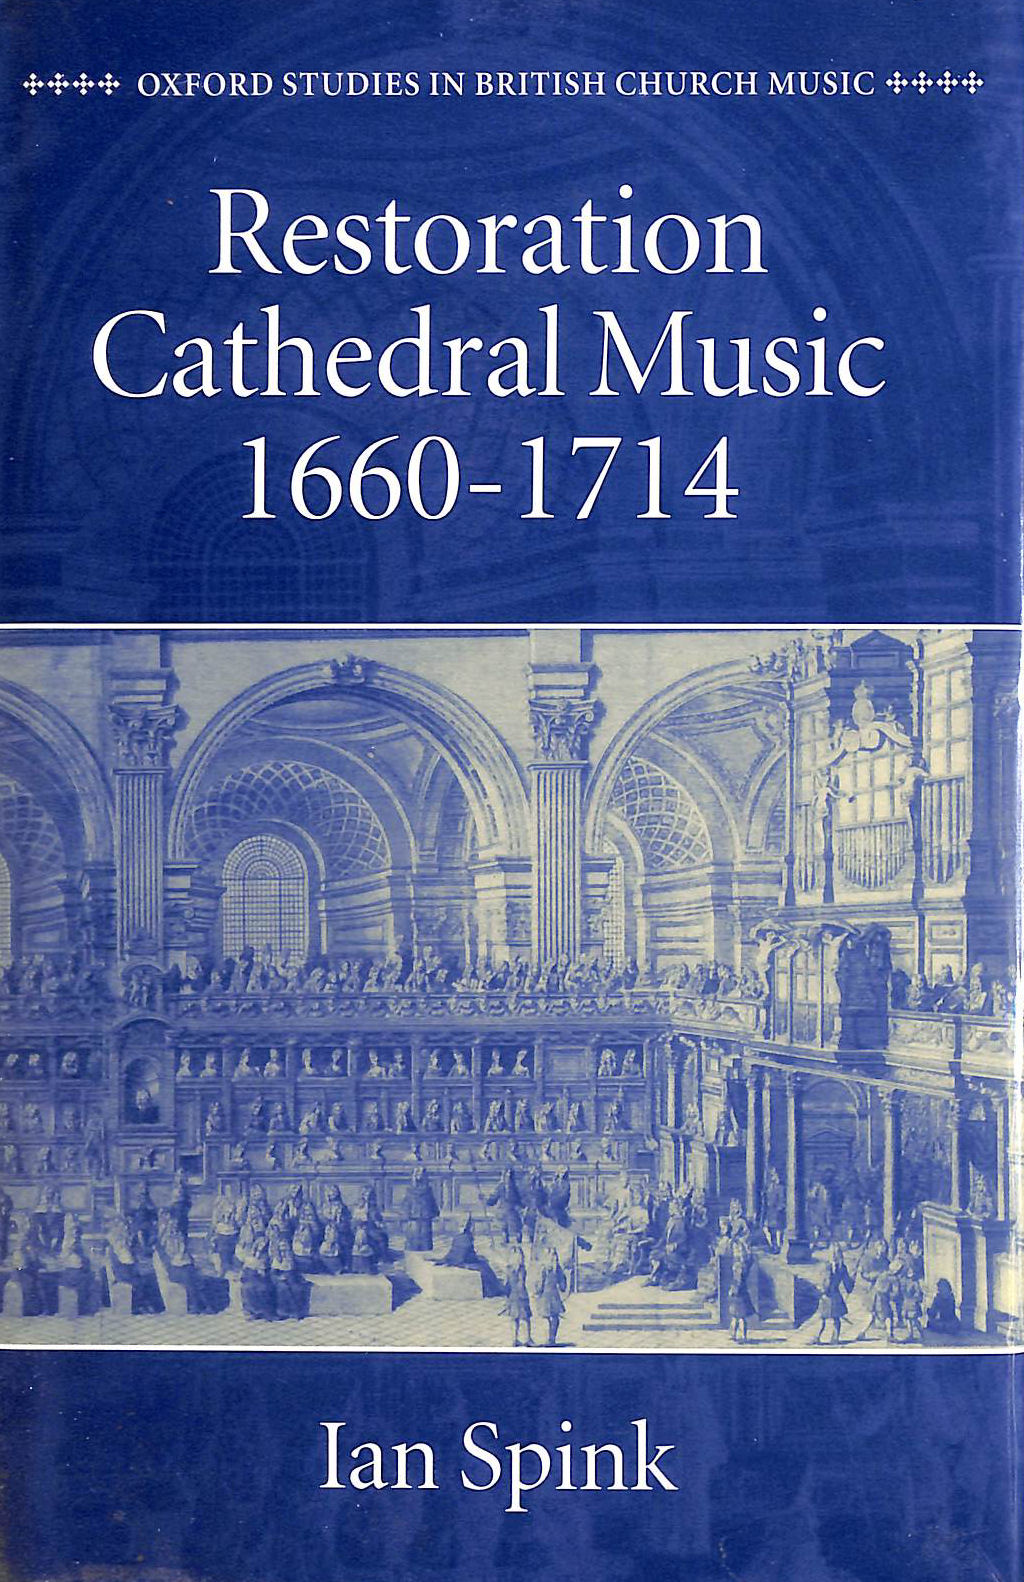 Image for Restoration Cathedral Music, 1660-1714 (Oxford Studies in British Church Music)